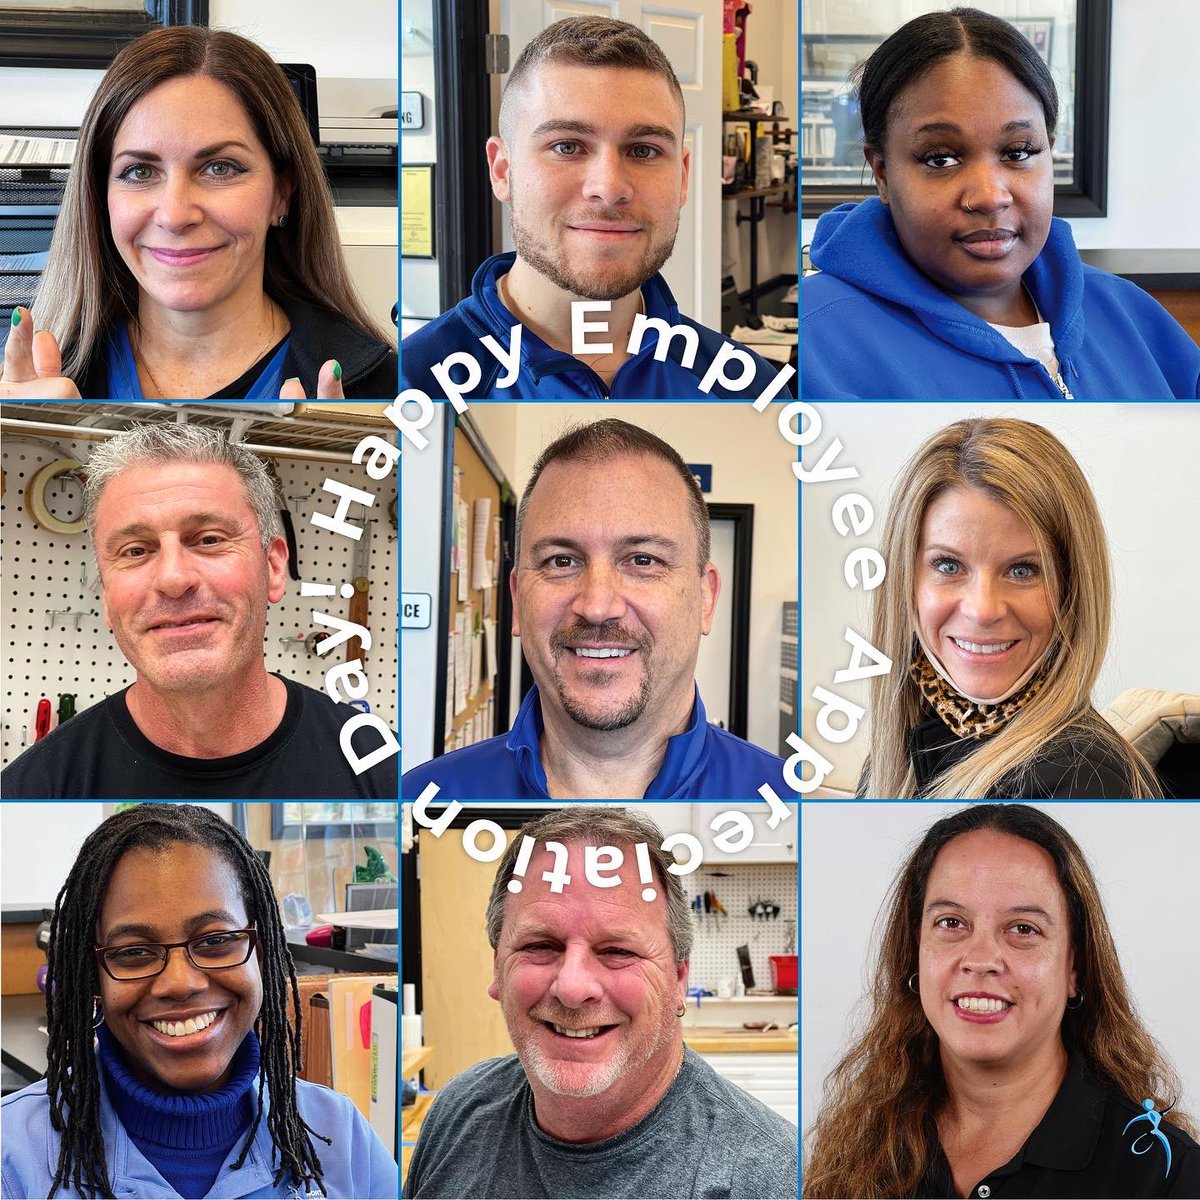 A great employee is like a four leaf clover — hard to find and lucky to have. A special thanks to our employees for their hard work and dedication! 💙 #EmployeeAppreciationDay